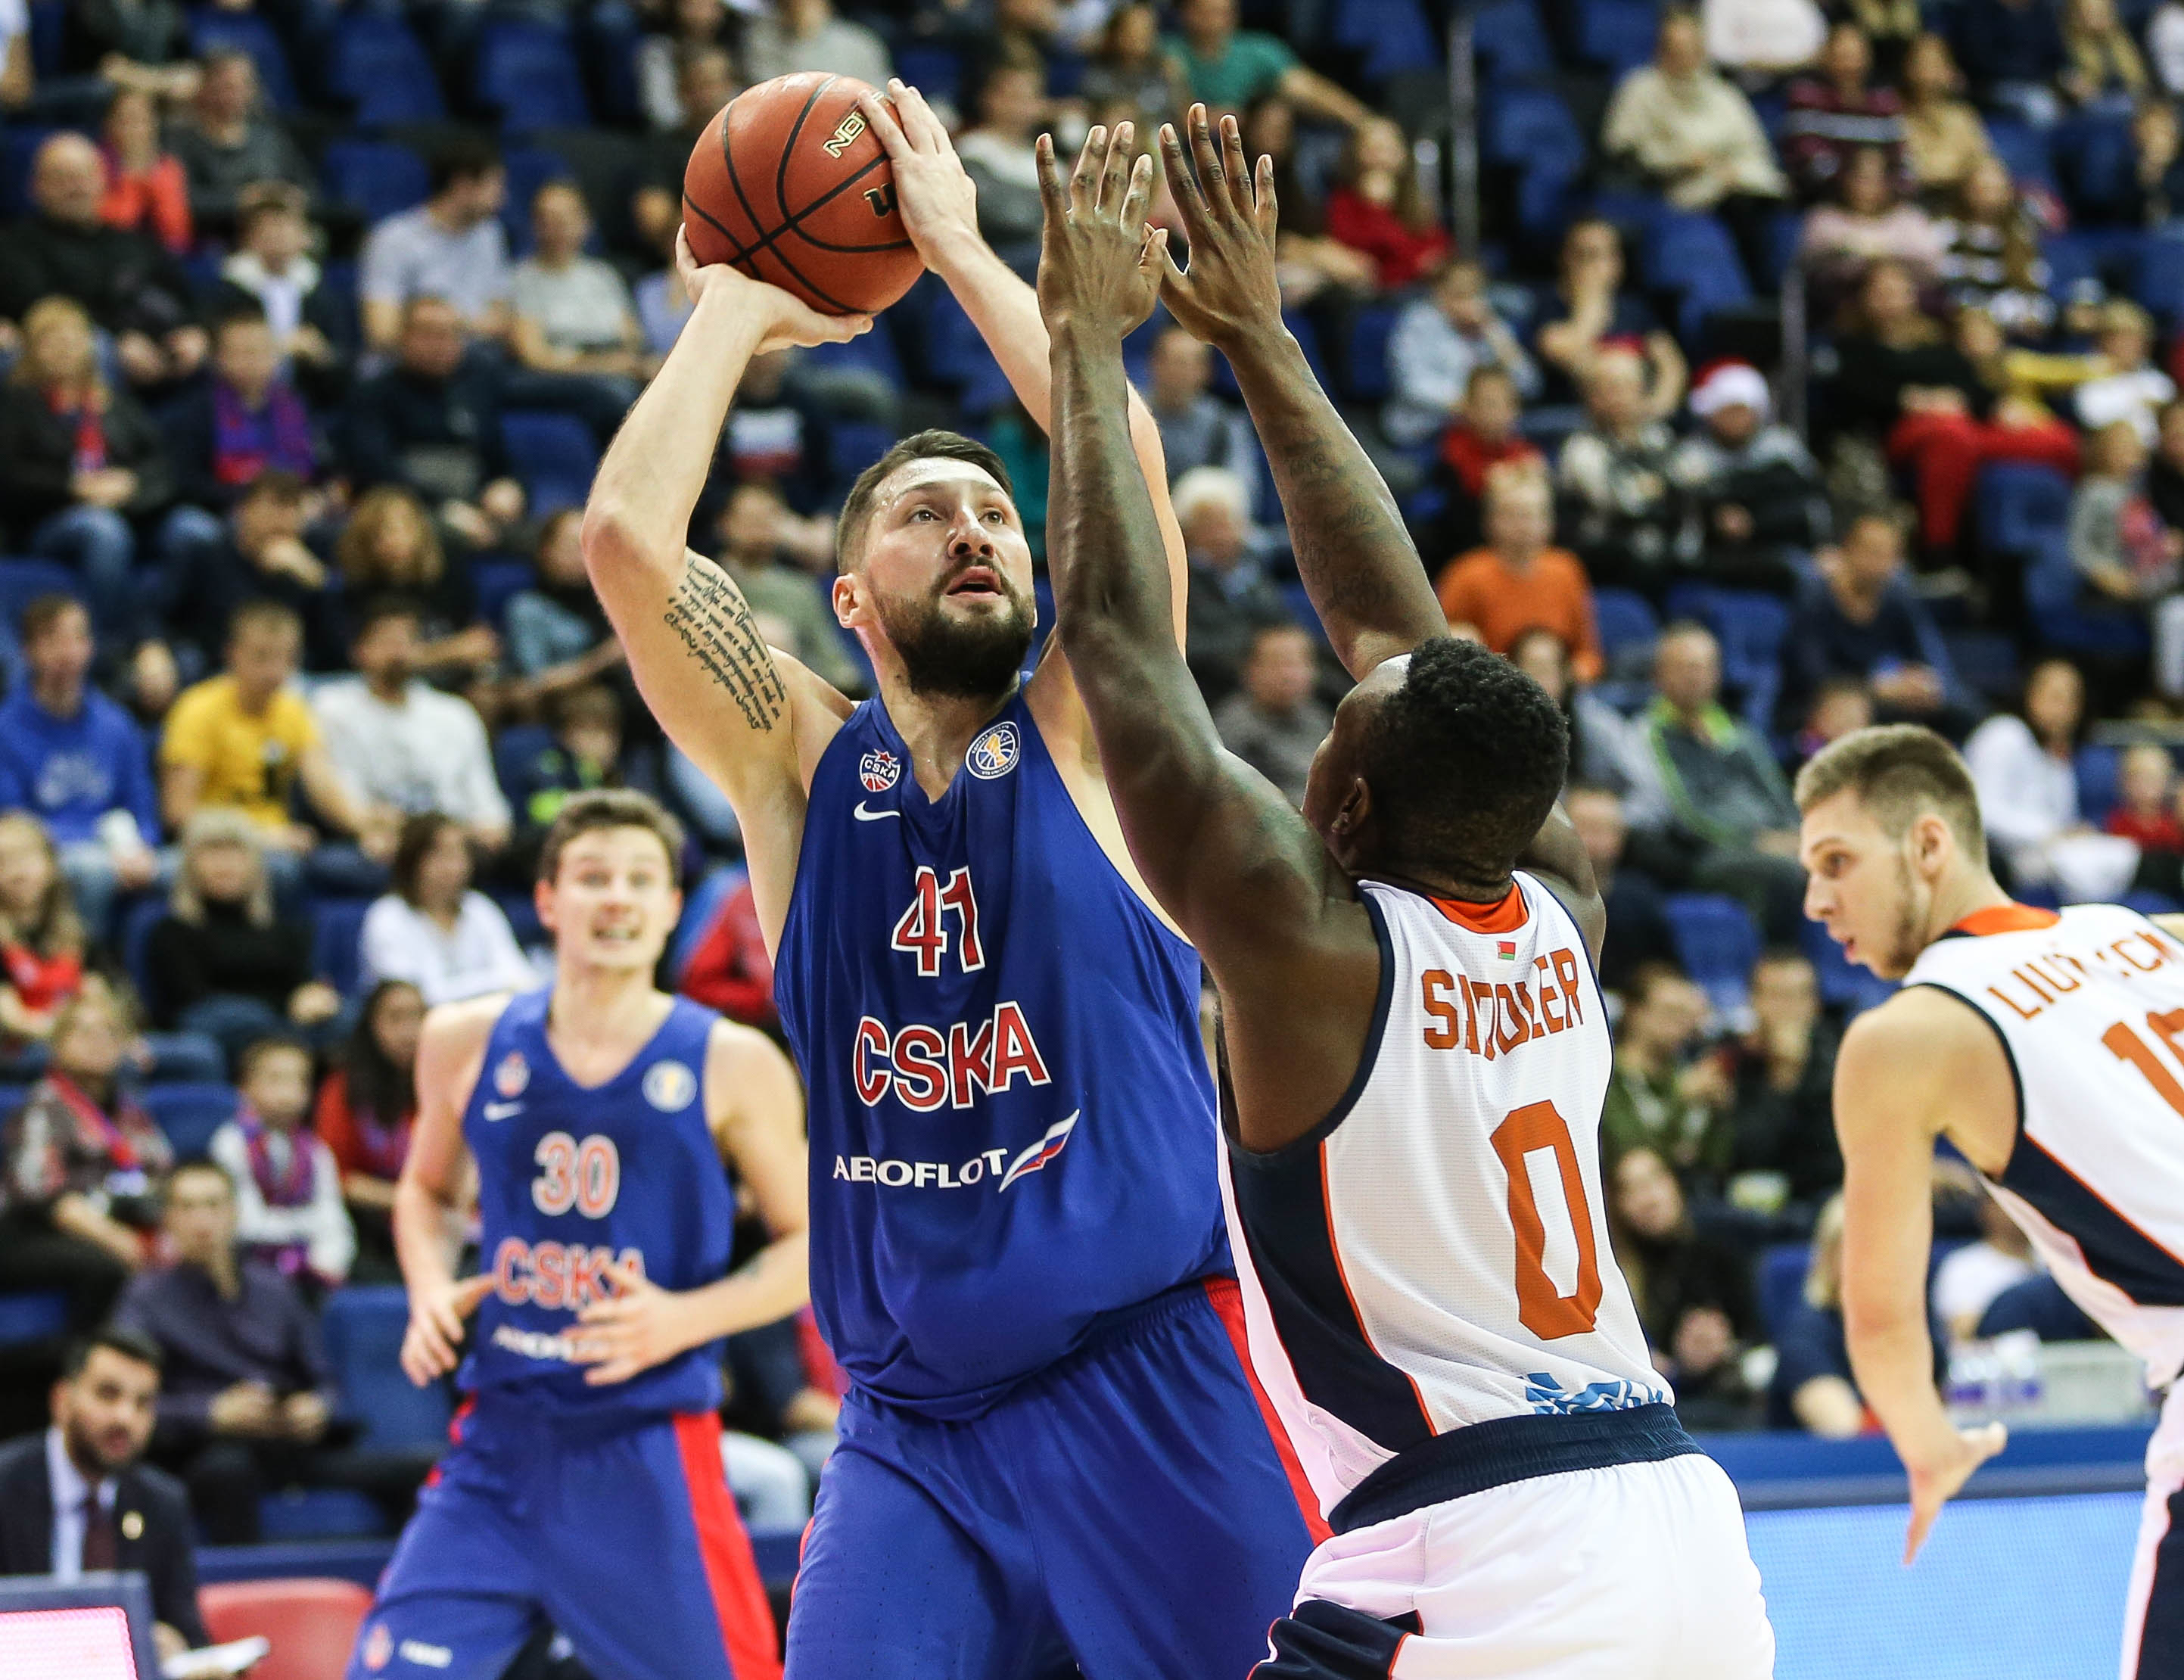 CSKA Scorches Dragons, Wins 8th Straight